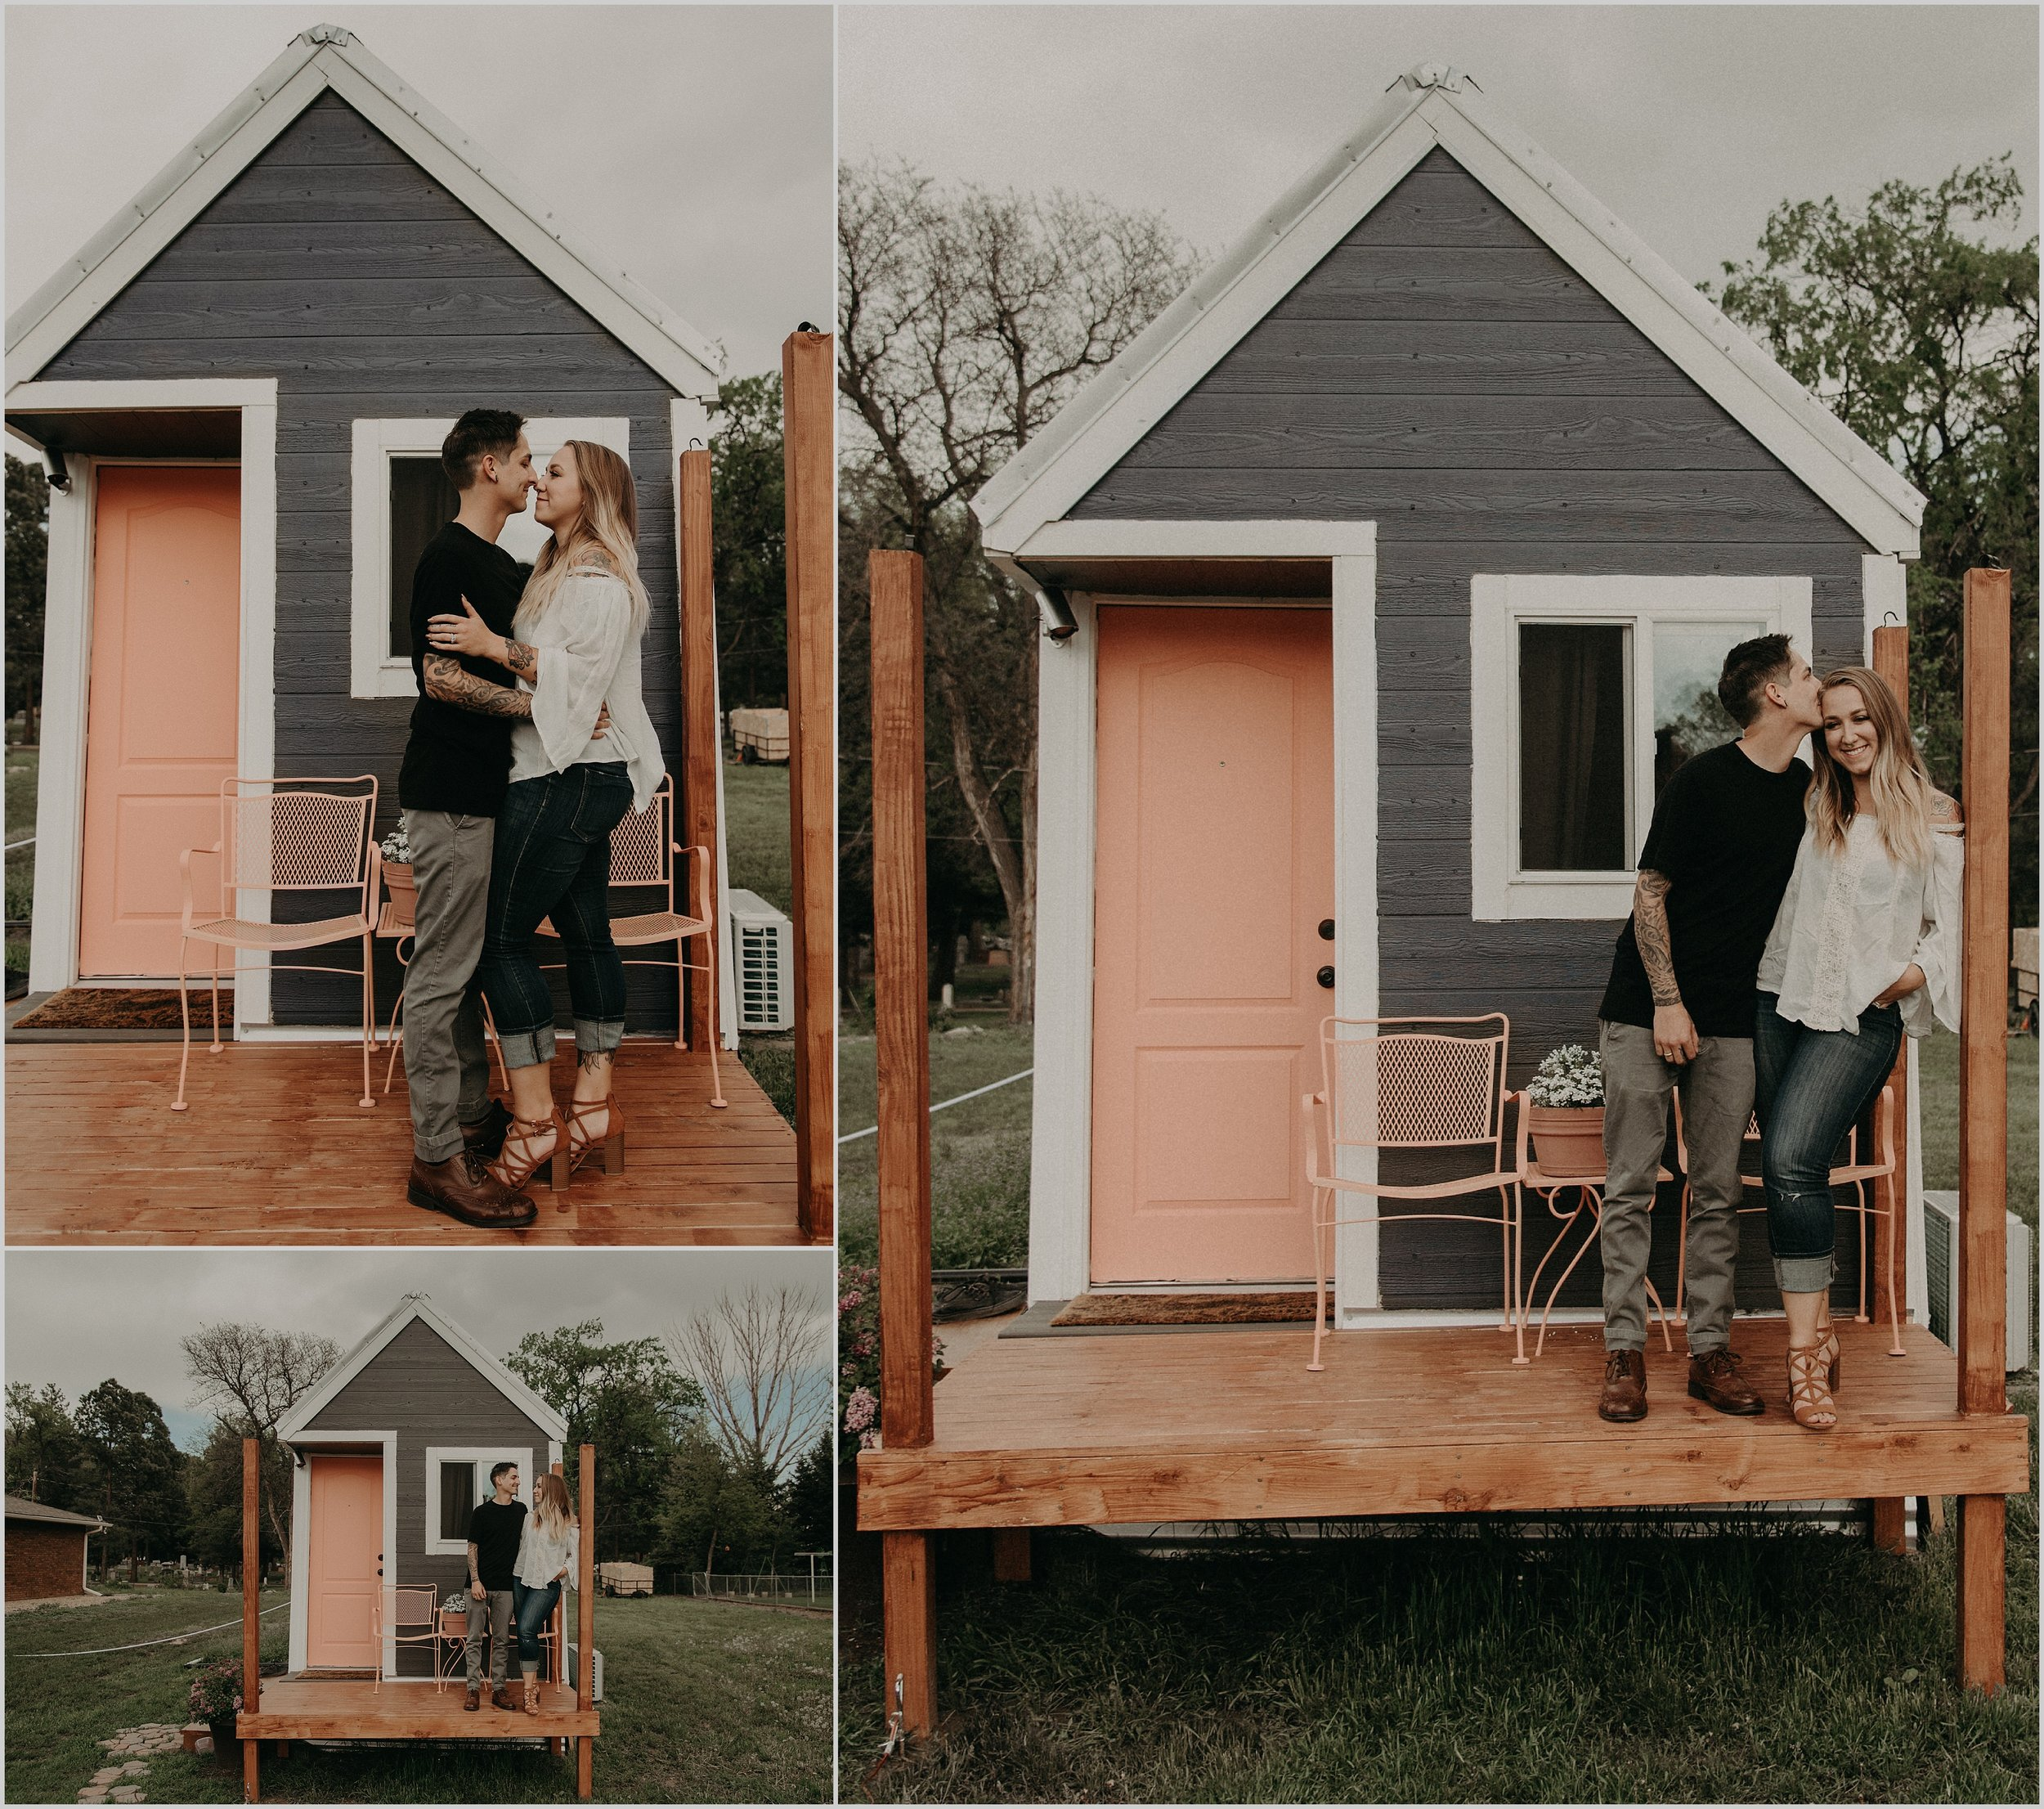 Married couple builds their own tiny home together in Longmont, Colorado